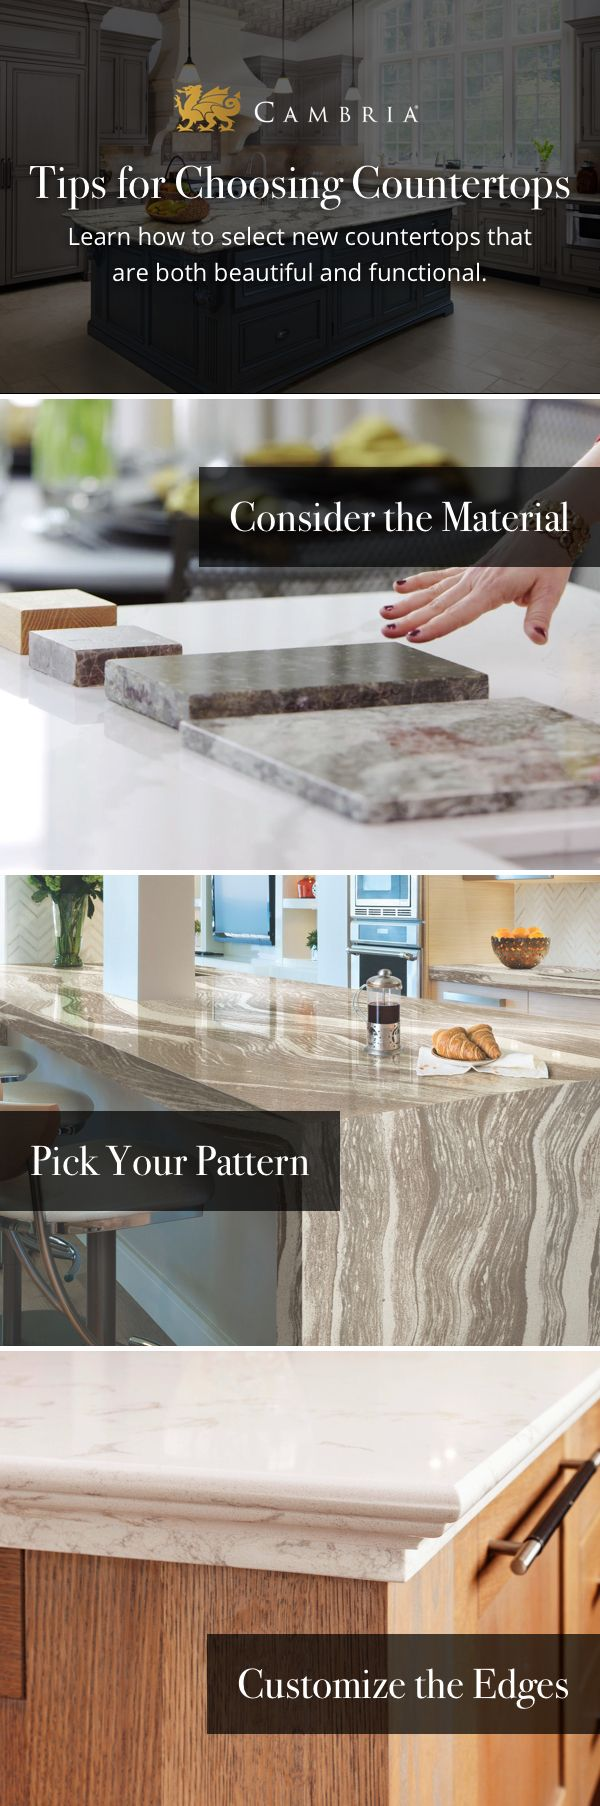 25 best ideas about cambria countertops on pinterest for Kitchen countertop planner